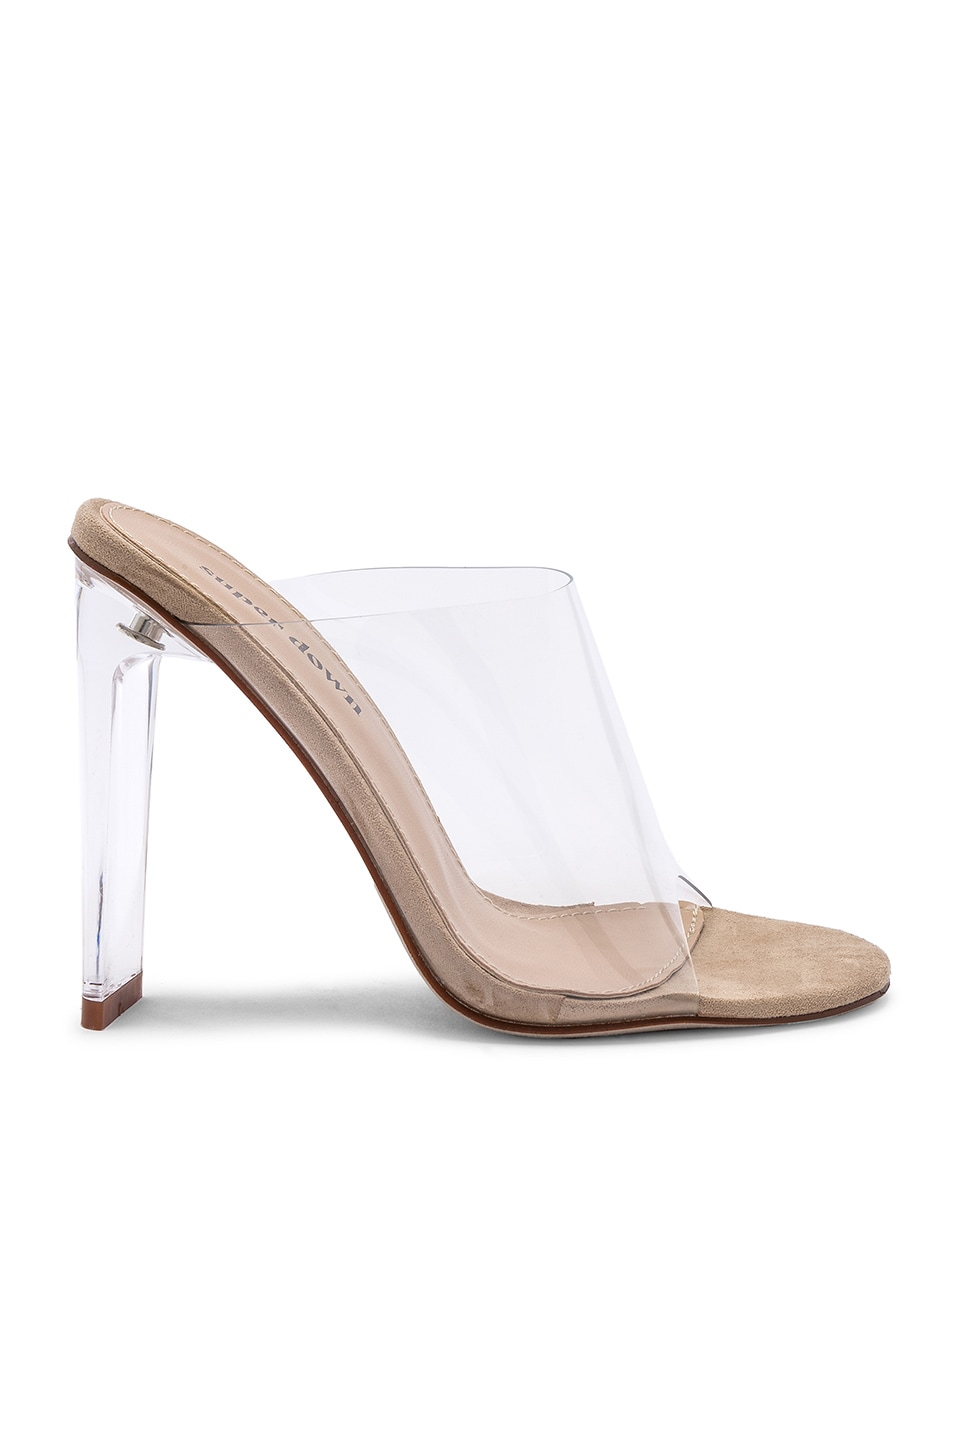 superdown Crawford Heel in Nude